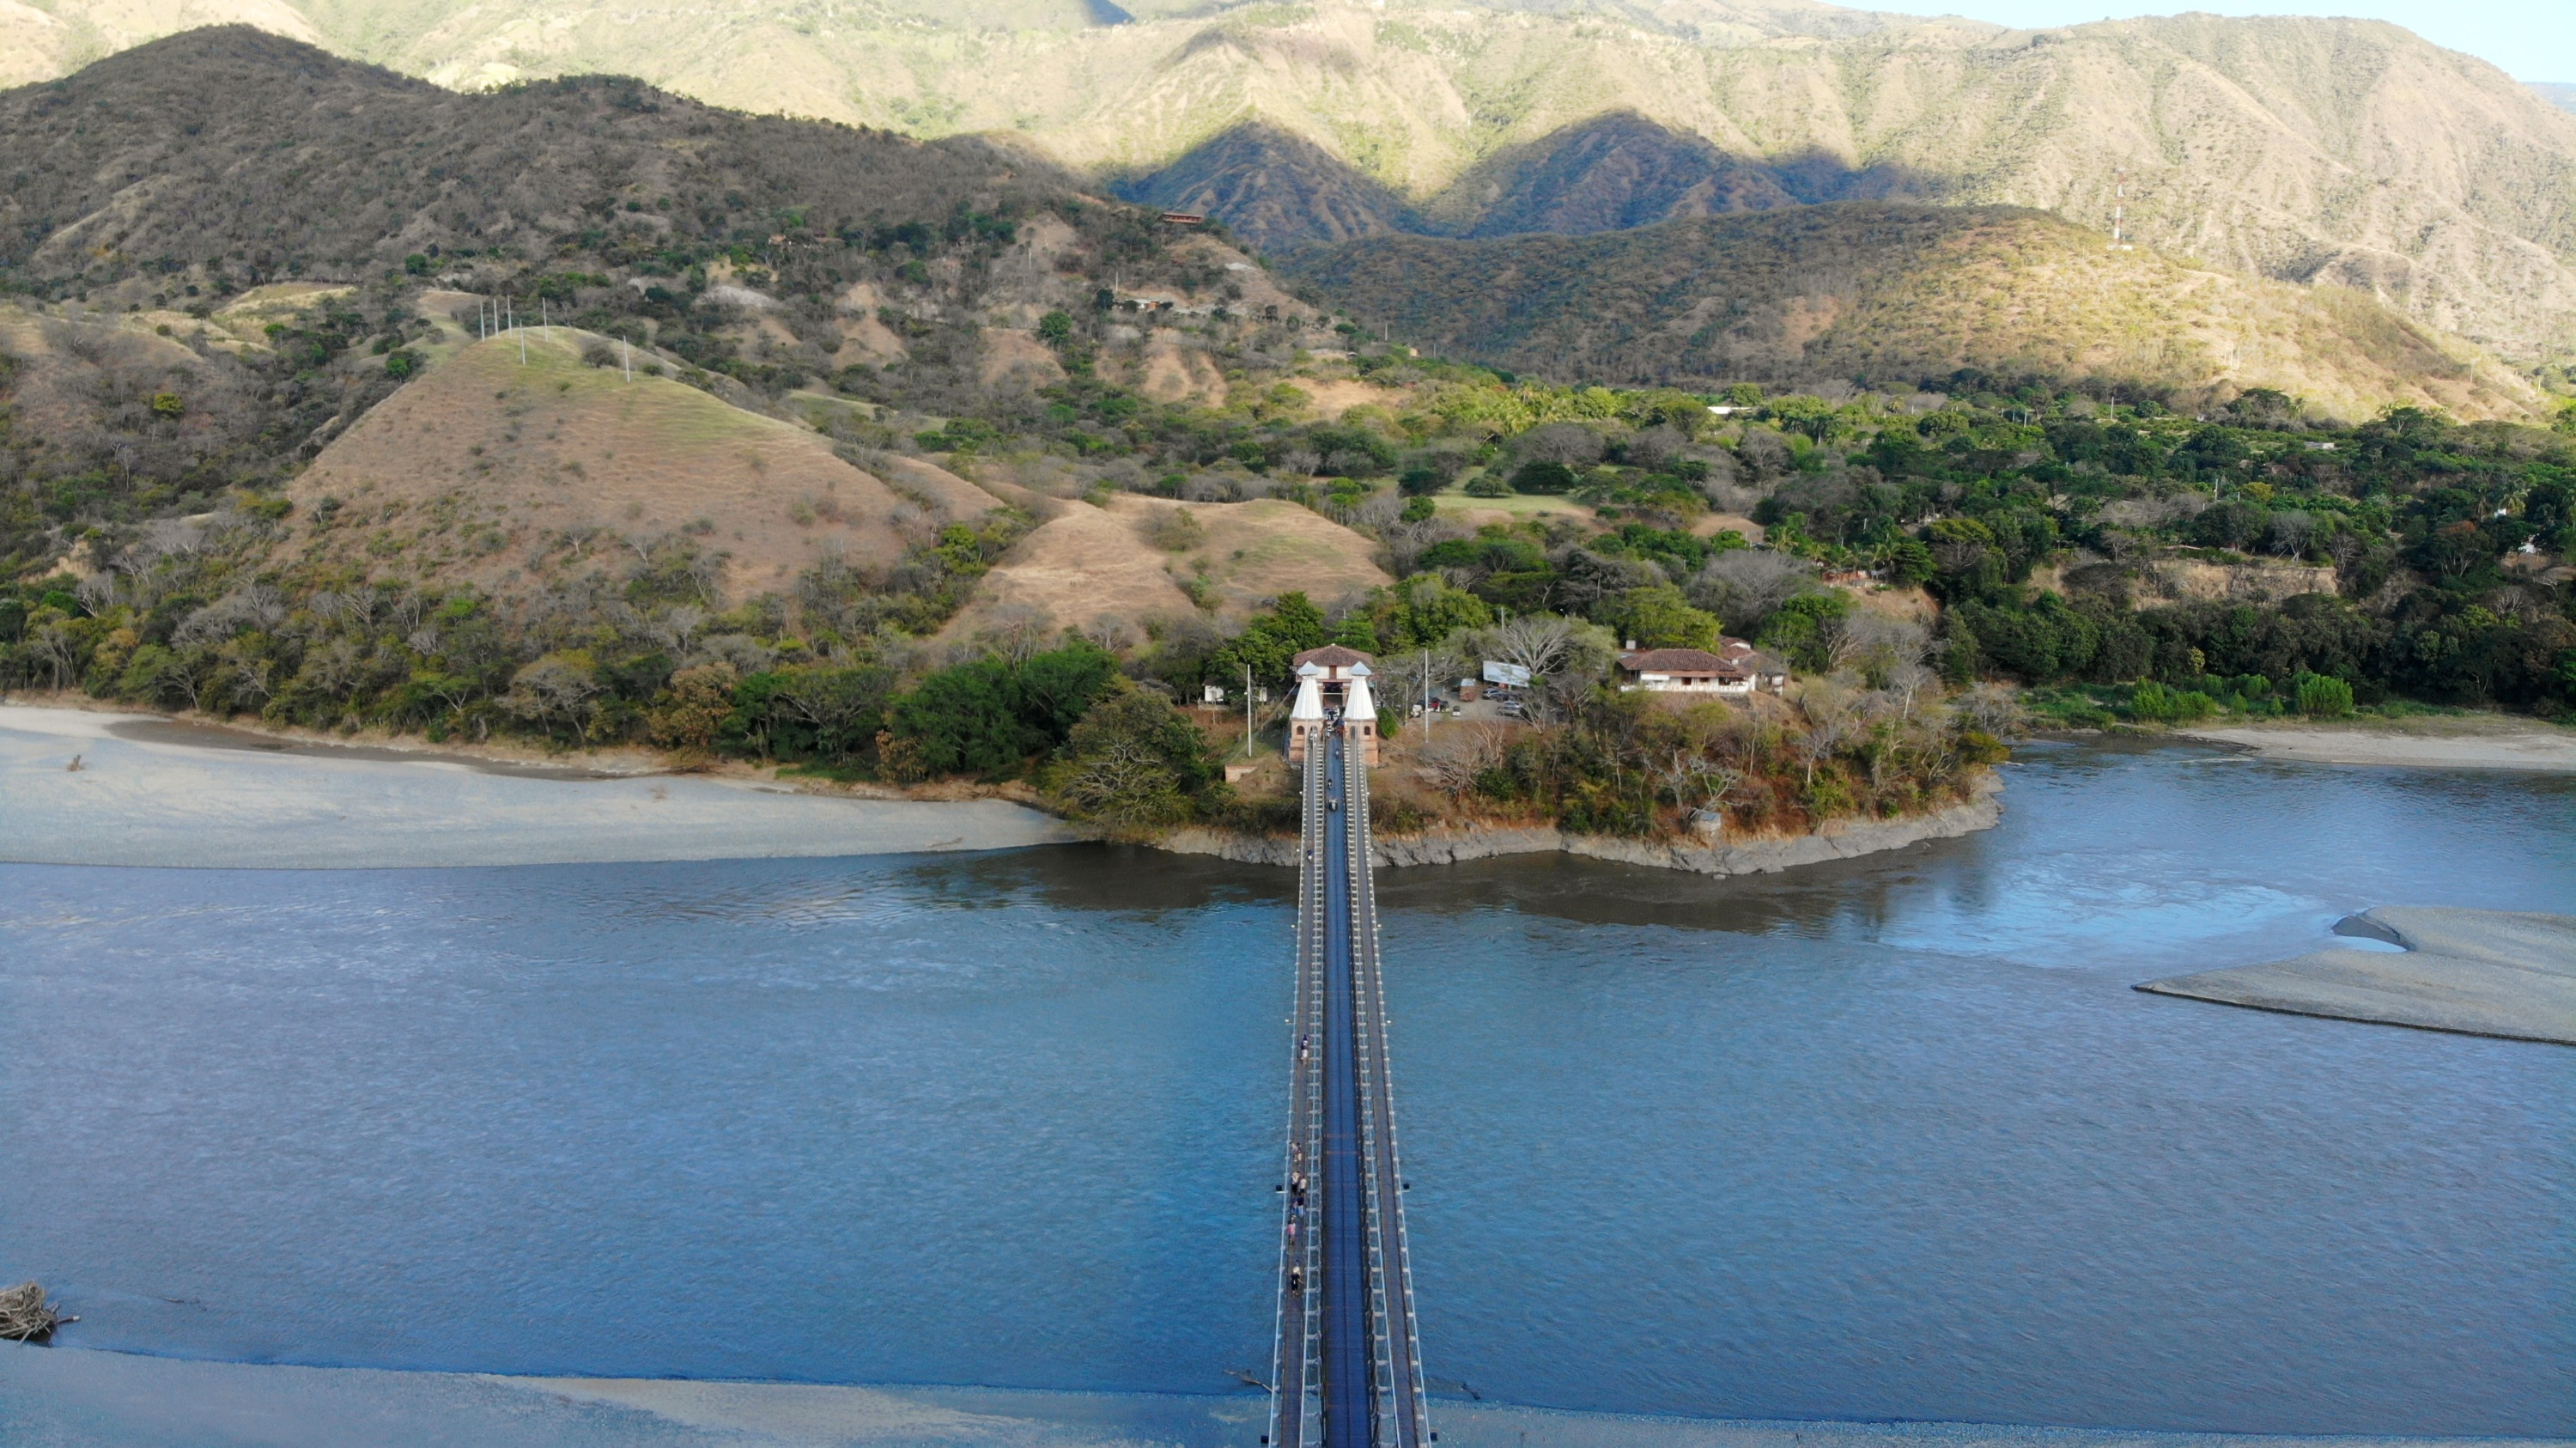 Puente de Occidente, Santa Fe de Ant